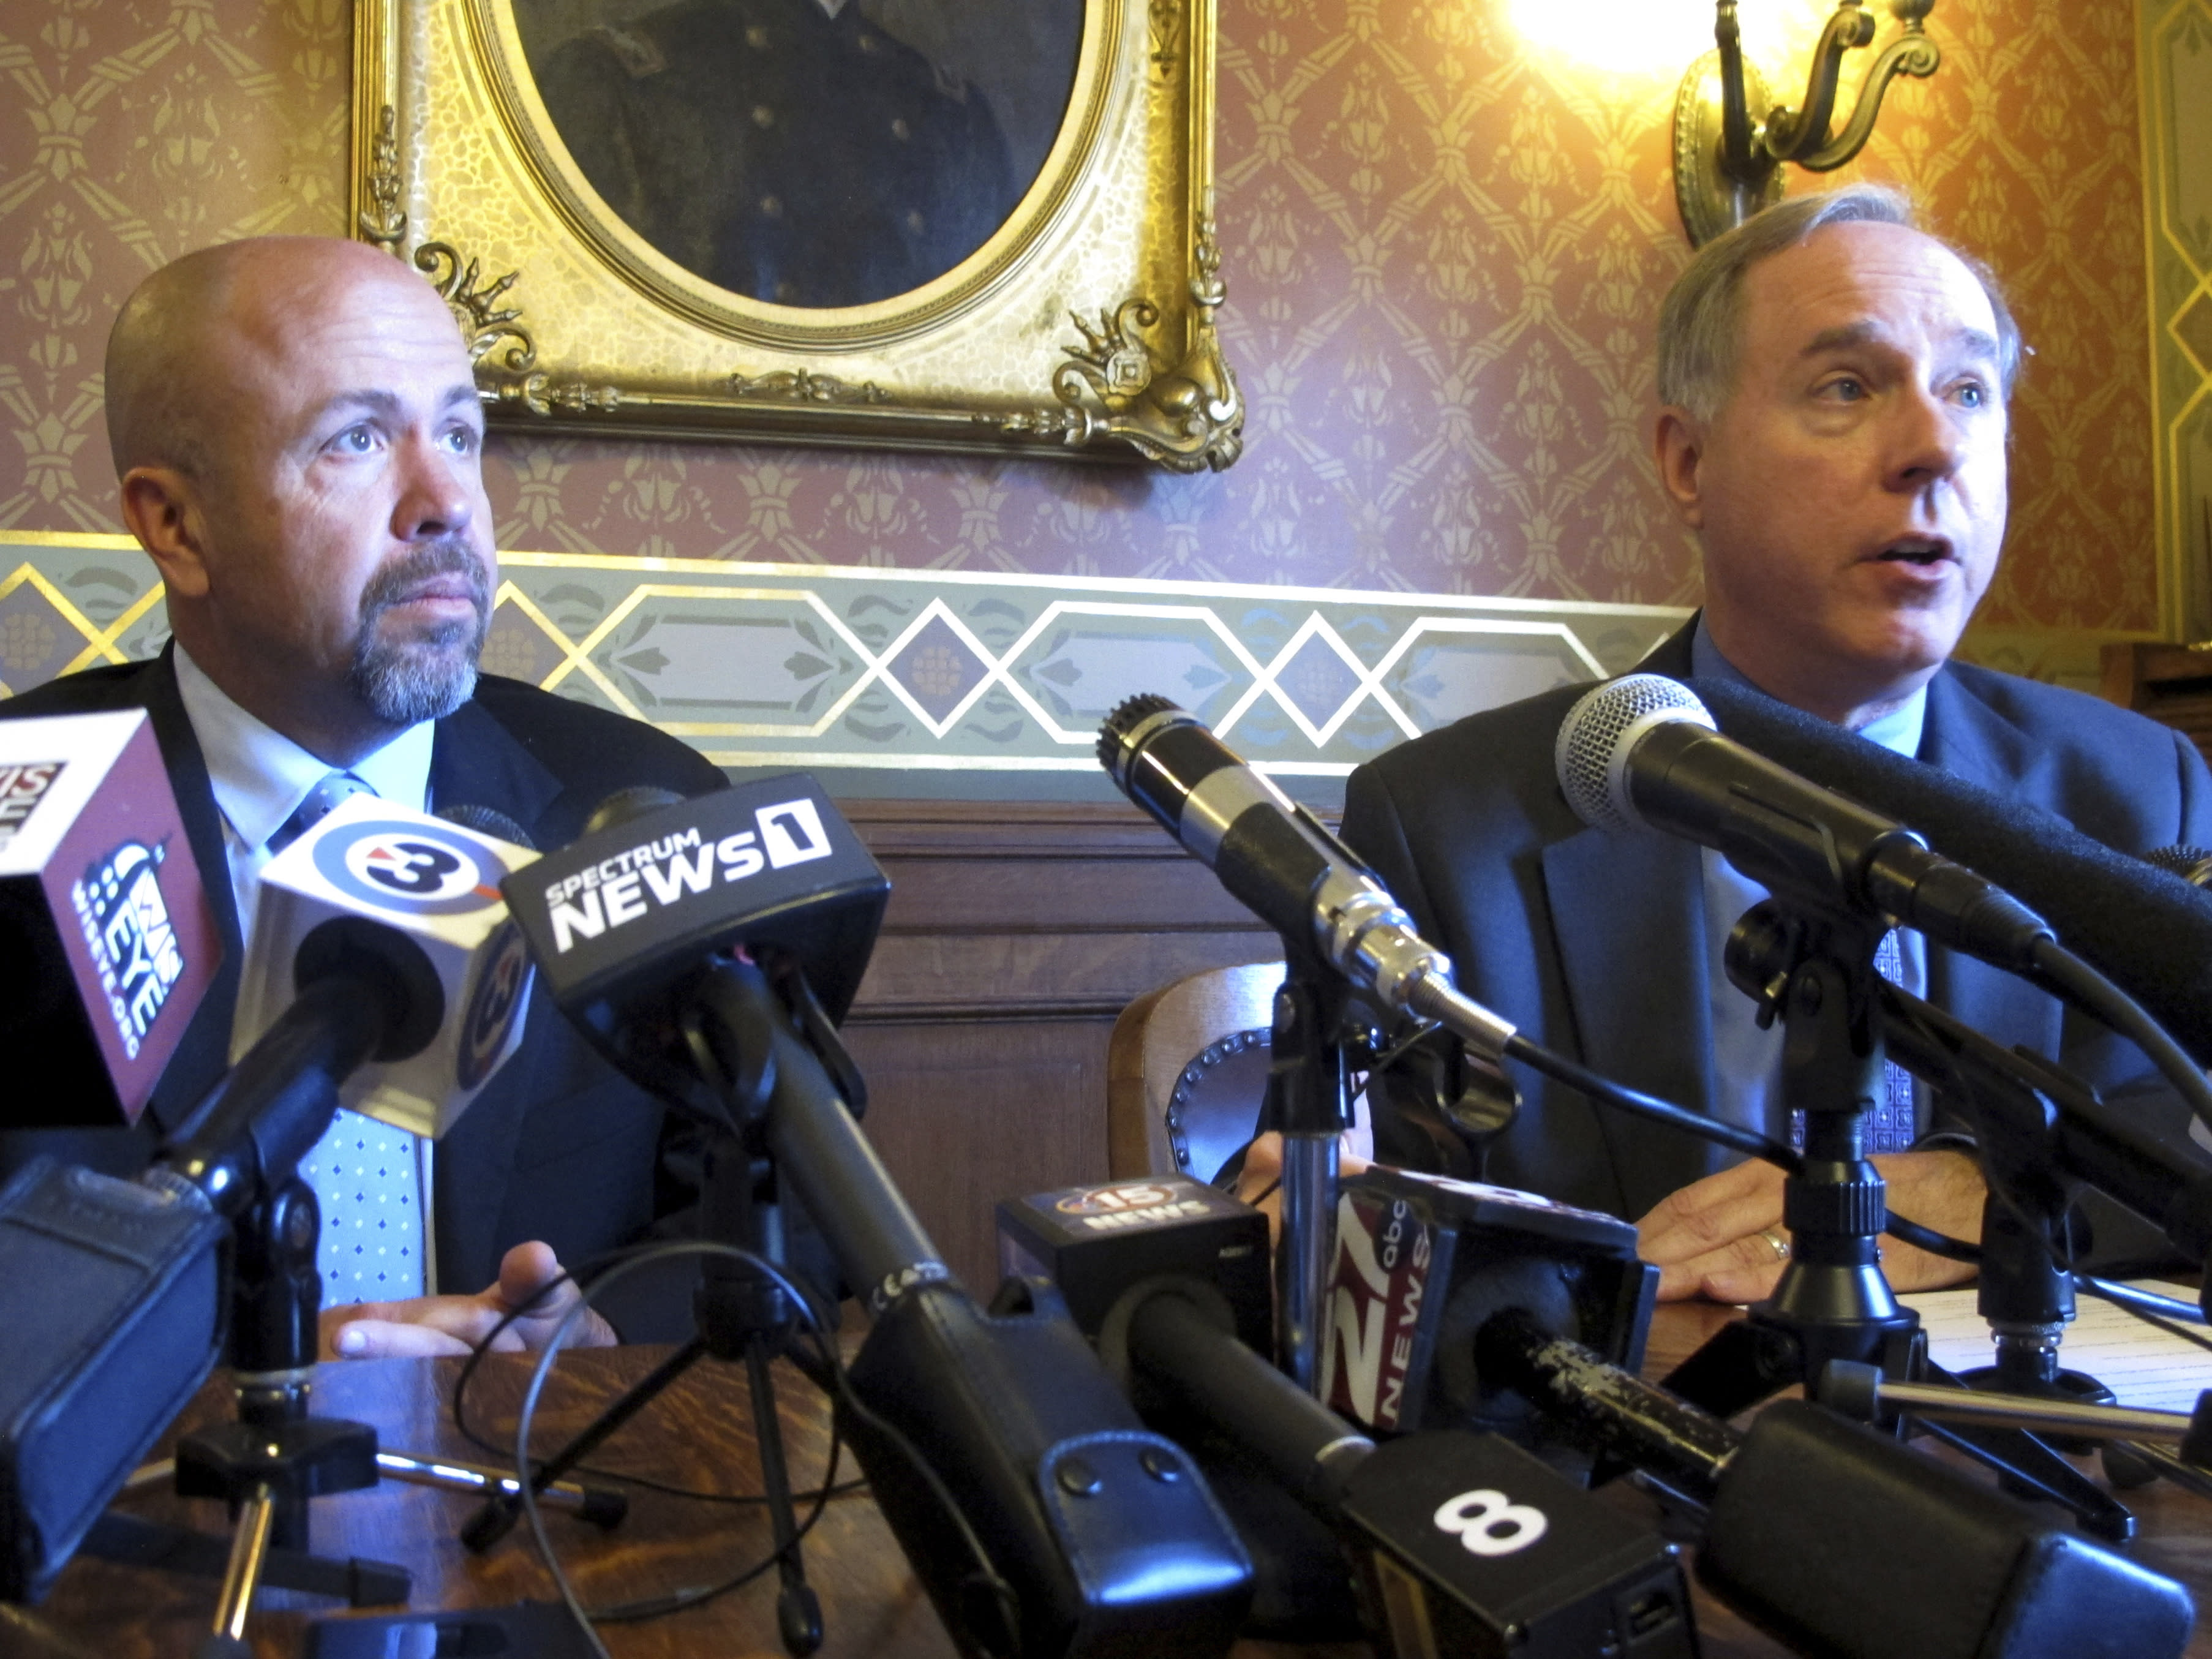 FILE - In this May 15, 2019 file photo, Wisconsin Republican Assembly Speaker Robin Vos, right, and Majority Leader Jim Steineke, left, speak in Madison, Wis. Wisconsin's Republican Assembly leaders are breaking with President Donald Trump over possibly delaying the Nov. 3, 2020 presidential election. Speaker Vos and Majority Leader Steineke tweeted Thursday, July 30, 2020, that they oppose delaying the election, a date that is enshrined in federal law and would require an act of Congress to change, including agreement from the Democratic-controlled House of Representatives. (AP Photo/Scott Bauer File)